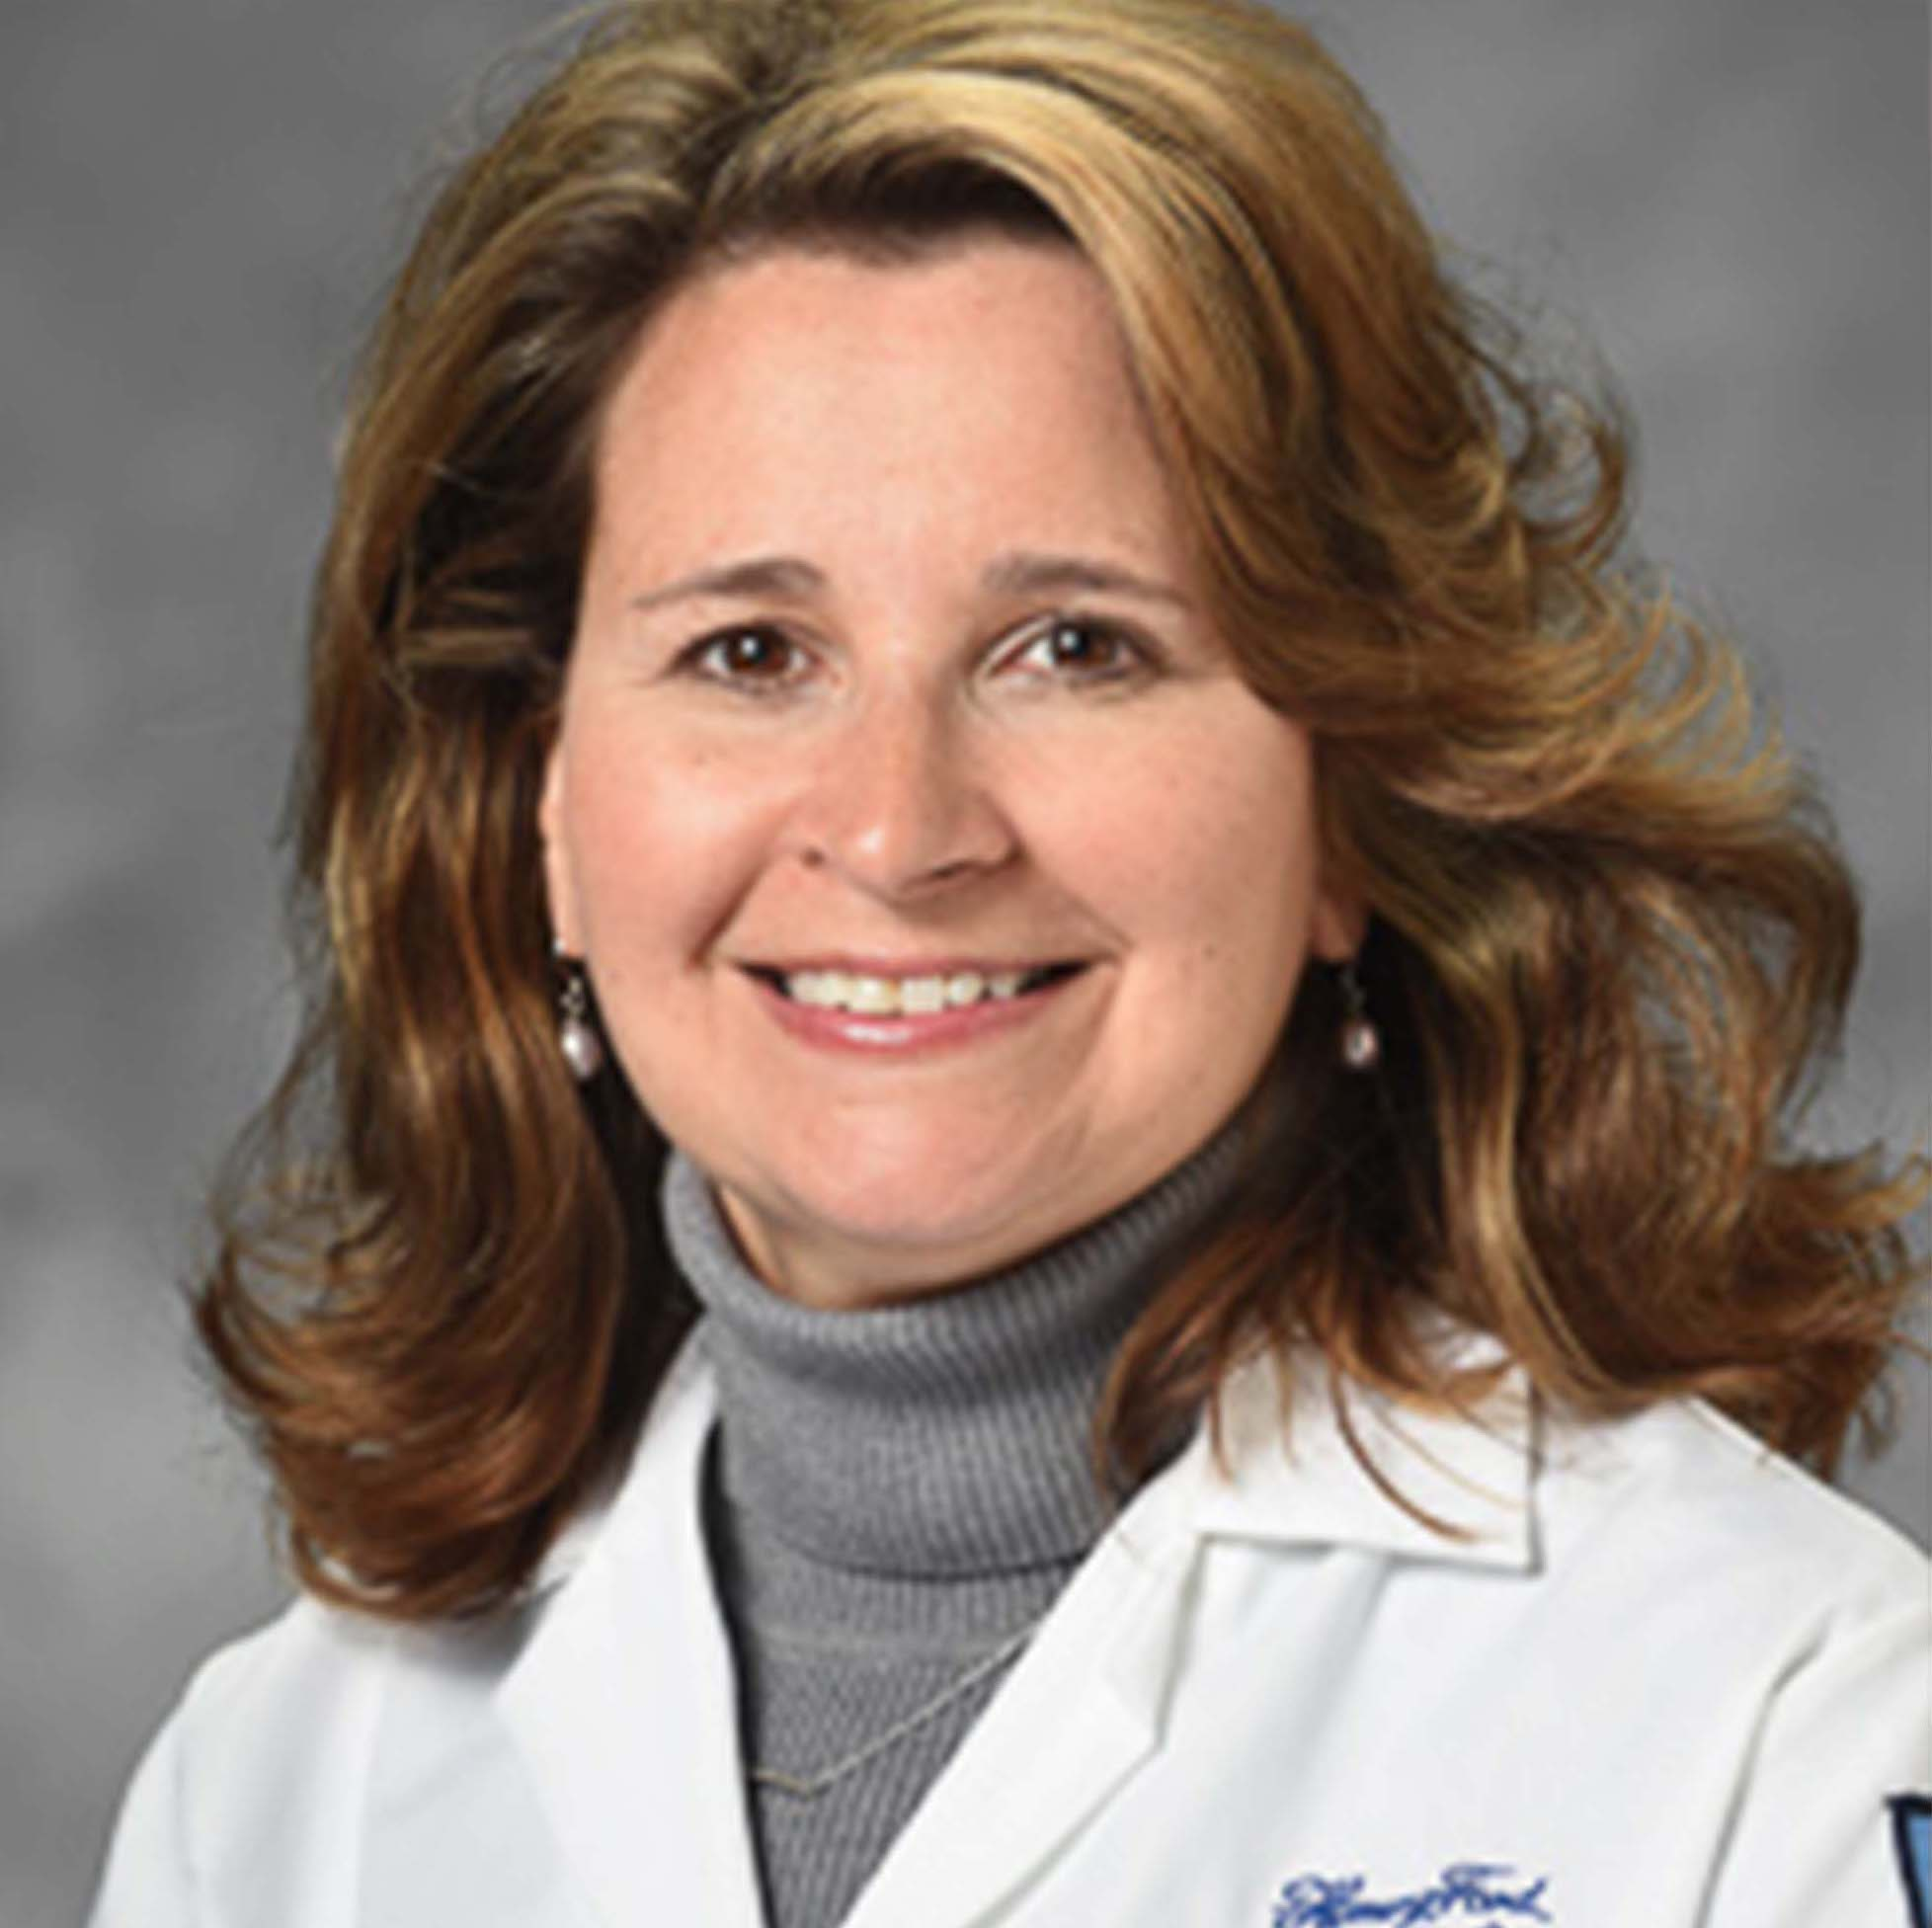 LISA MACLEAN, MD